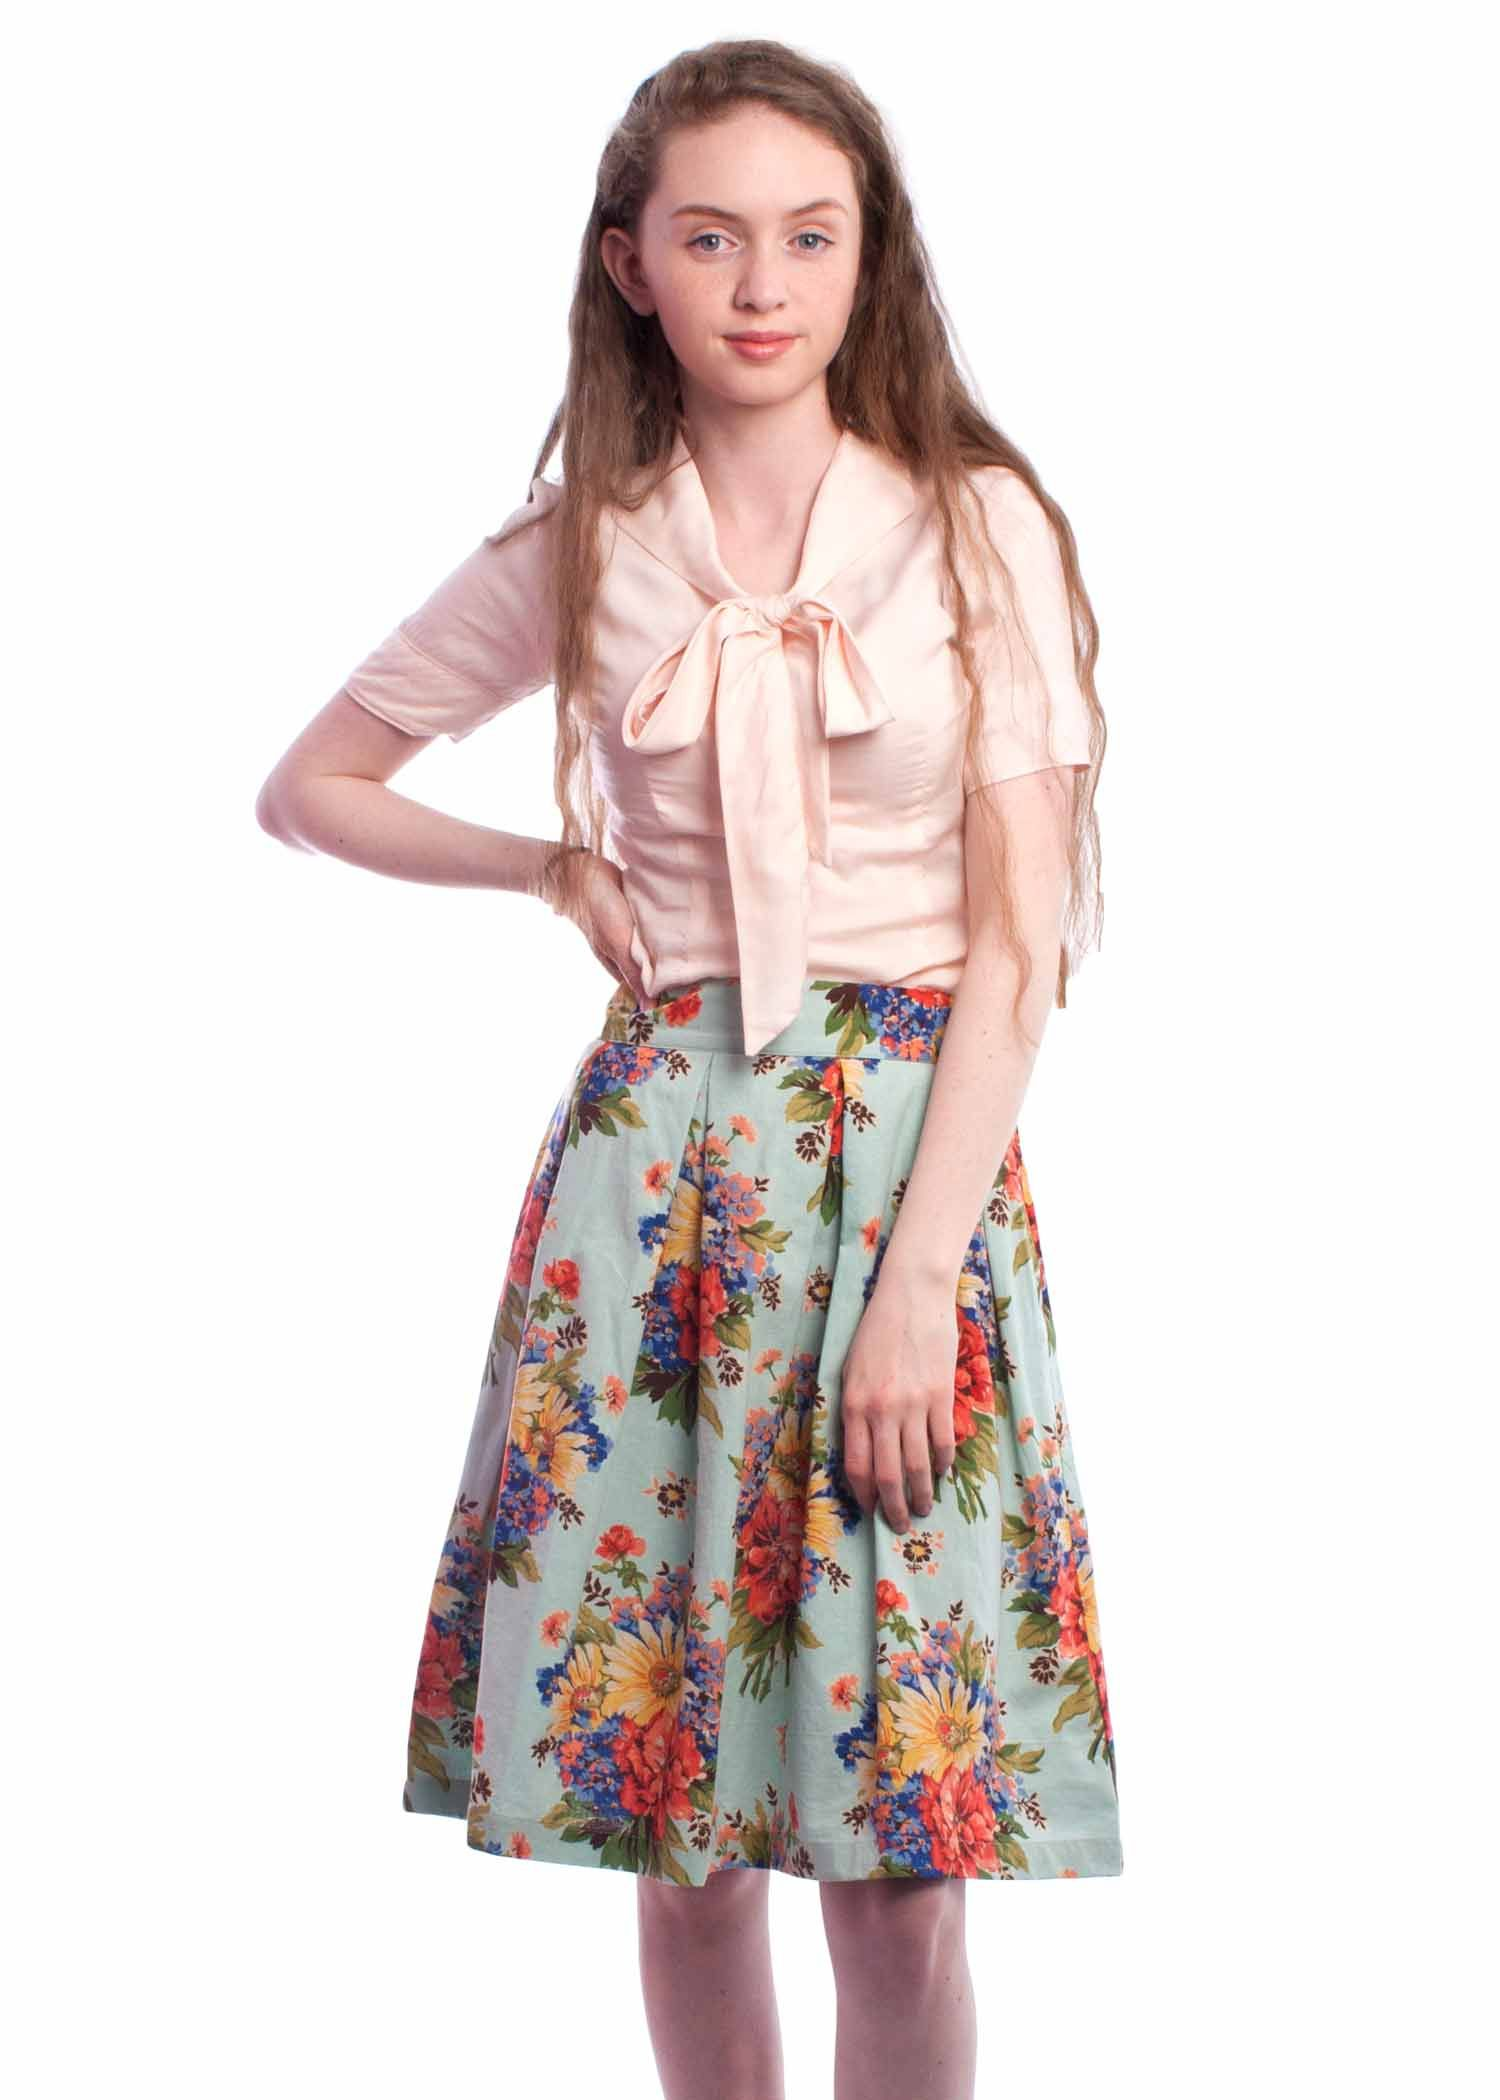 The floral Anita skirt from Circus, available exclusively at  ilovecarousel.com! #skirt #floral #vintage #retro #style #1950s #summer # fashion #circus # ...